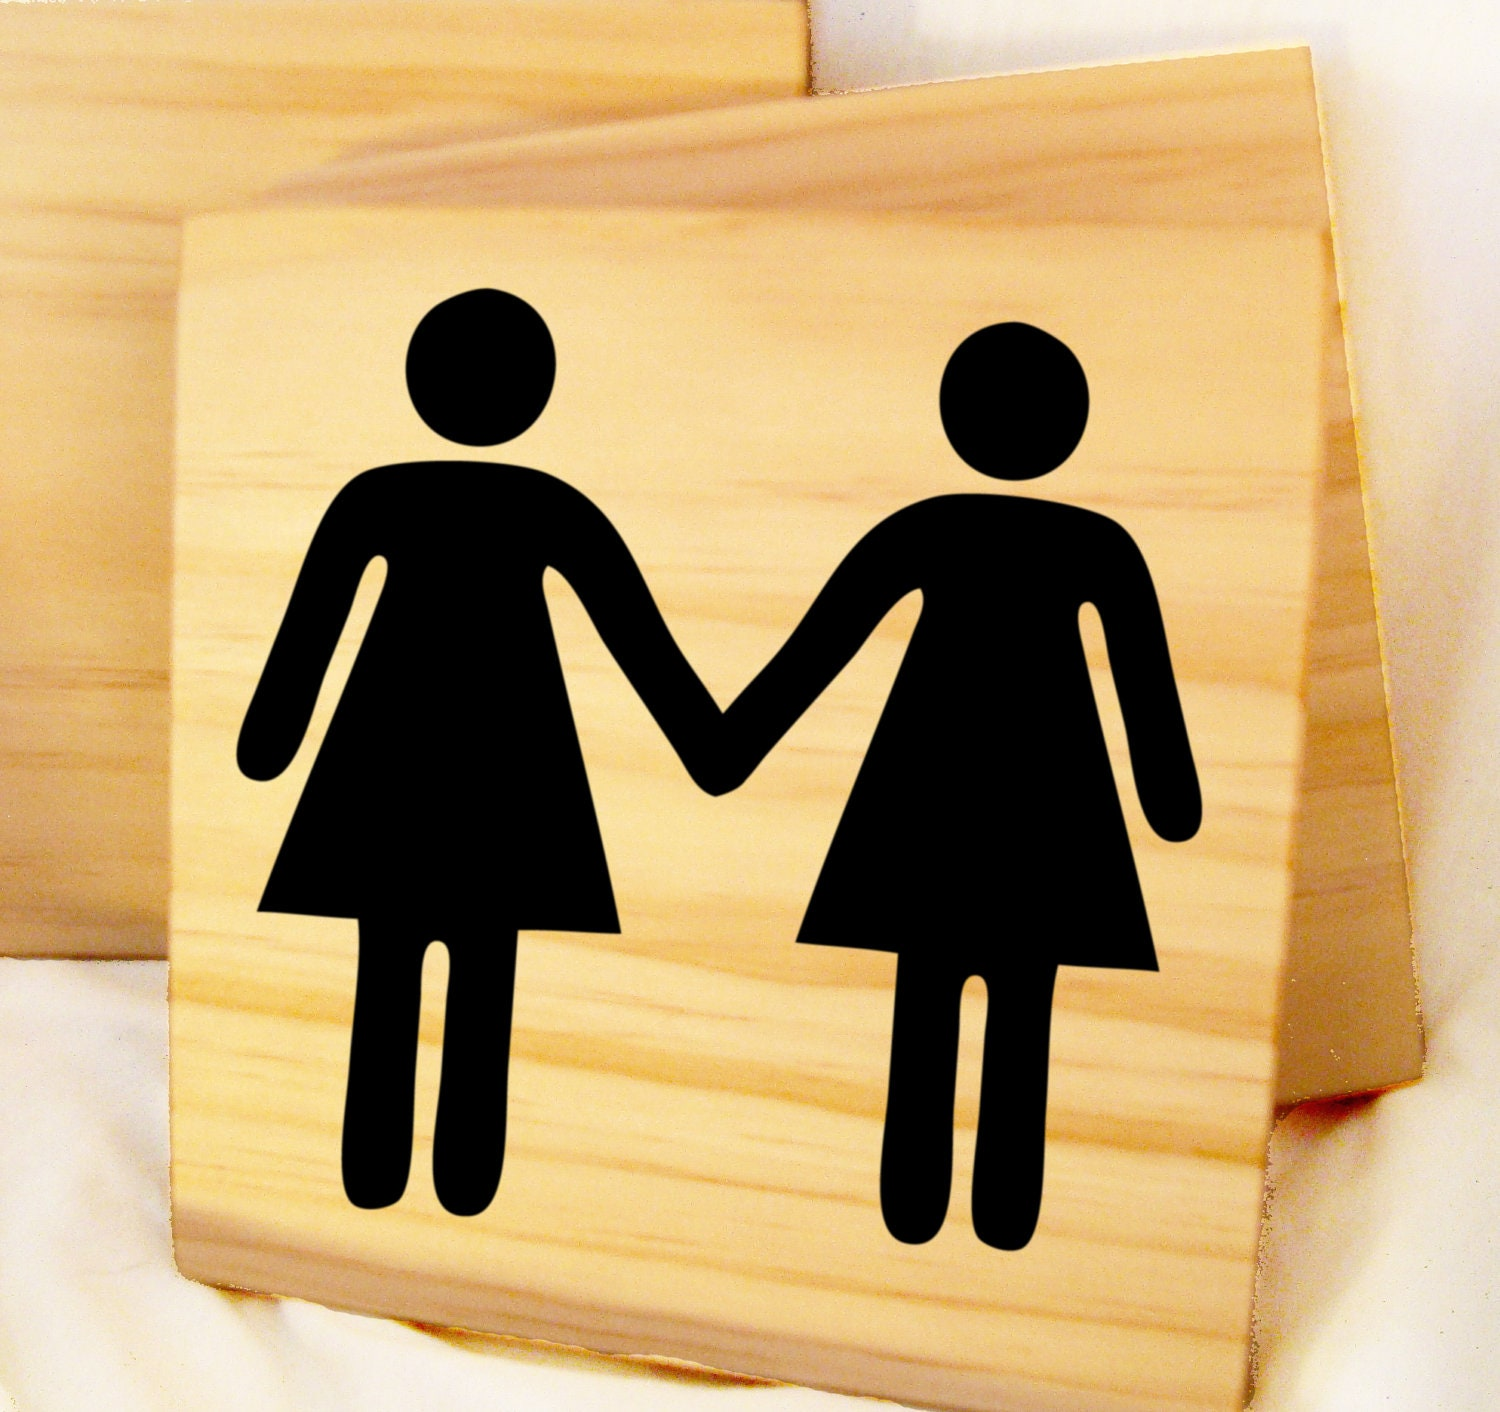 Helvetica woman and woman holding hands- wooden block with custom decal- cute gay couple wedding gift